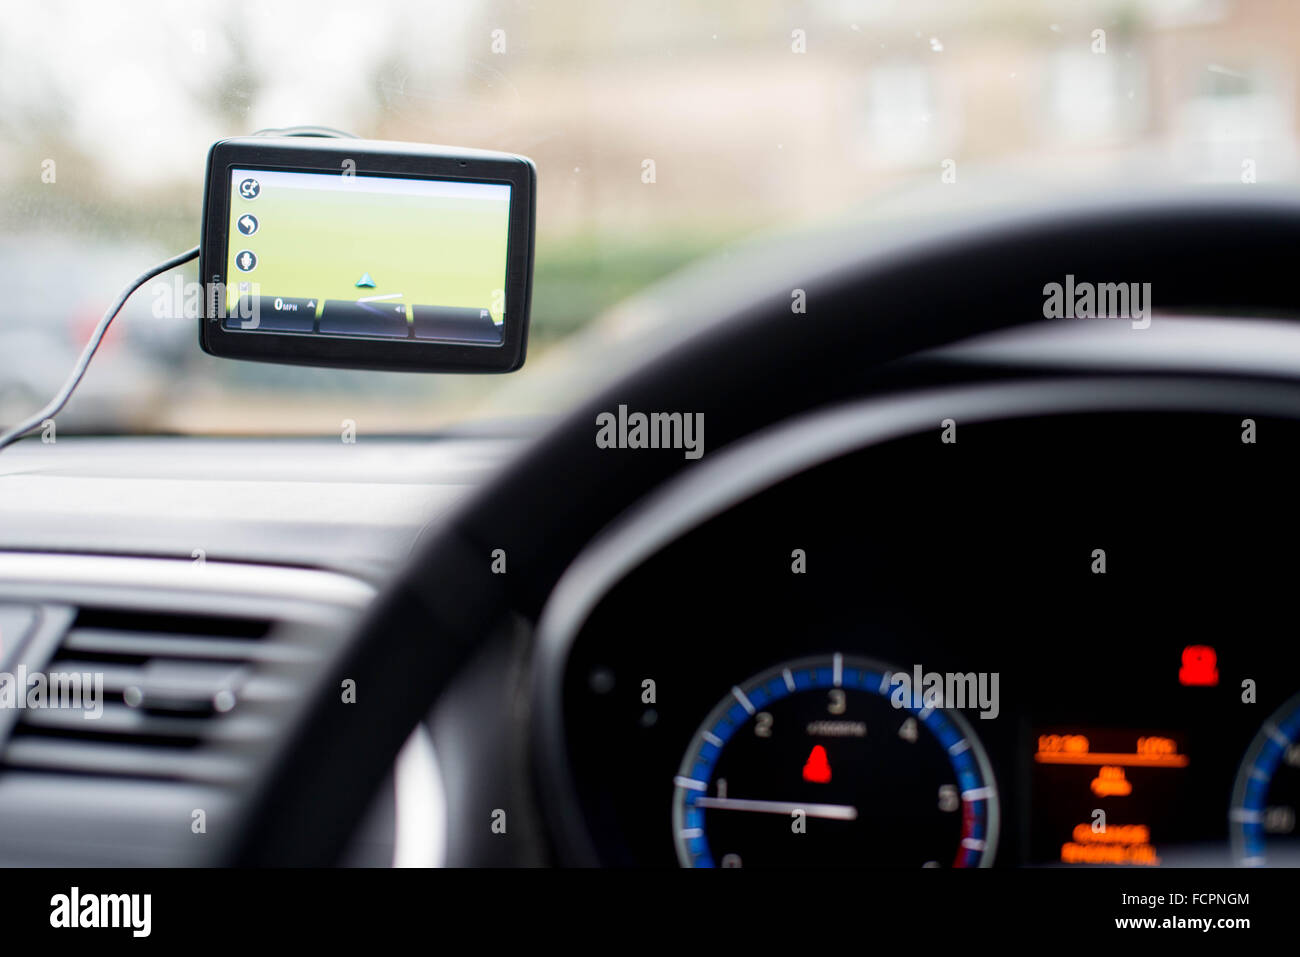 A 'tomtom' satellite navigation system (sat nav) or GPS set up in a car. - Stock Image